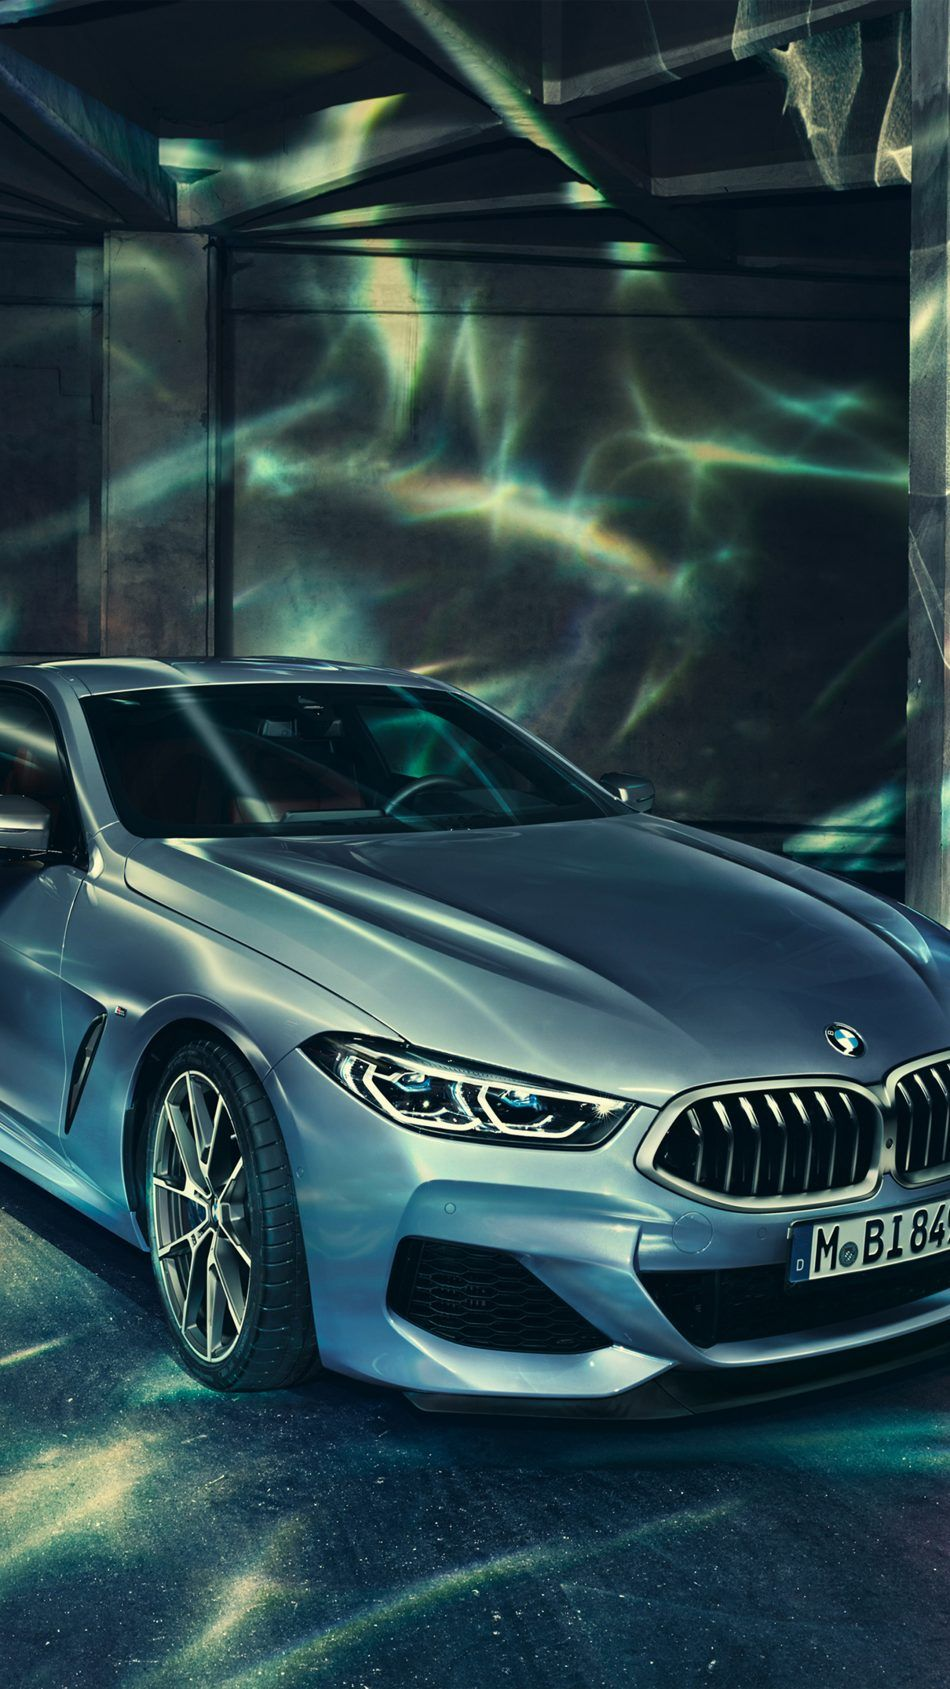 Bmw 8 Series 2019 Car Wallpapers Bmw Bmw Cars Cars